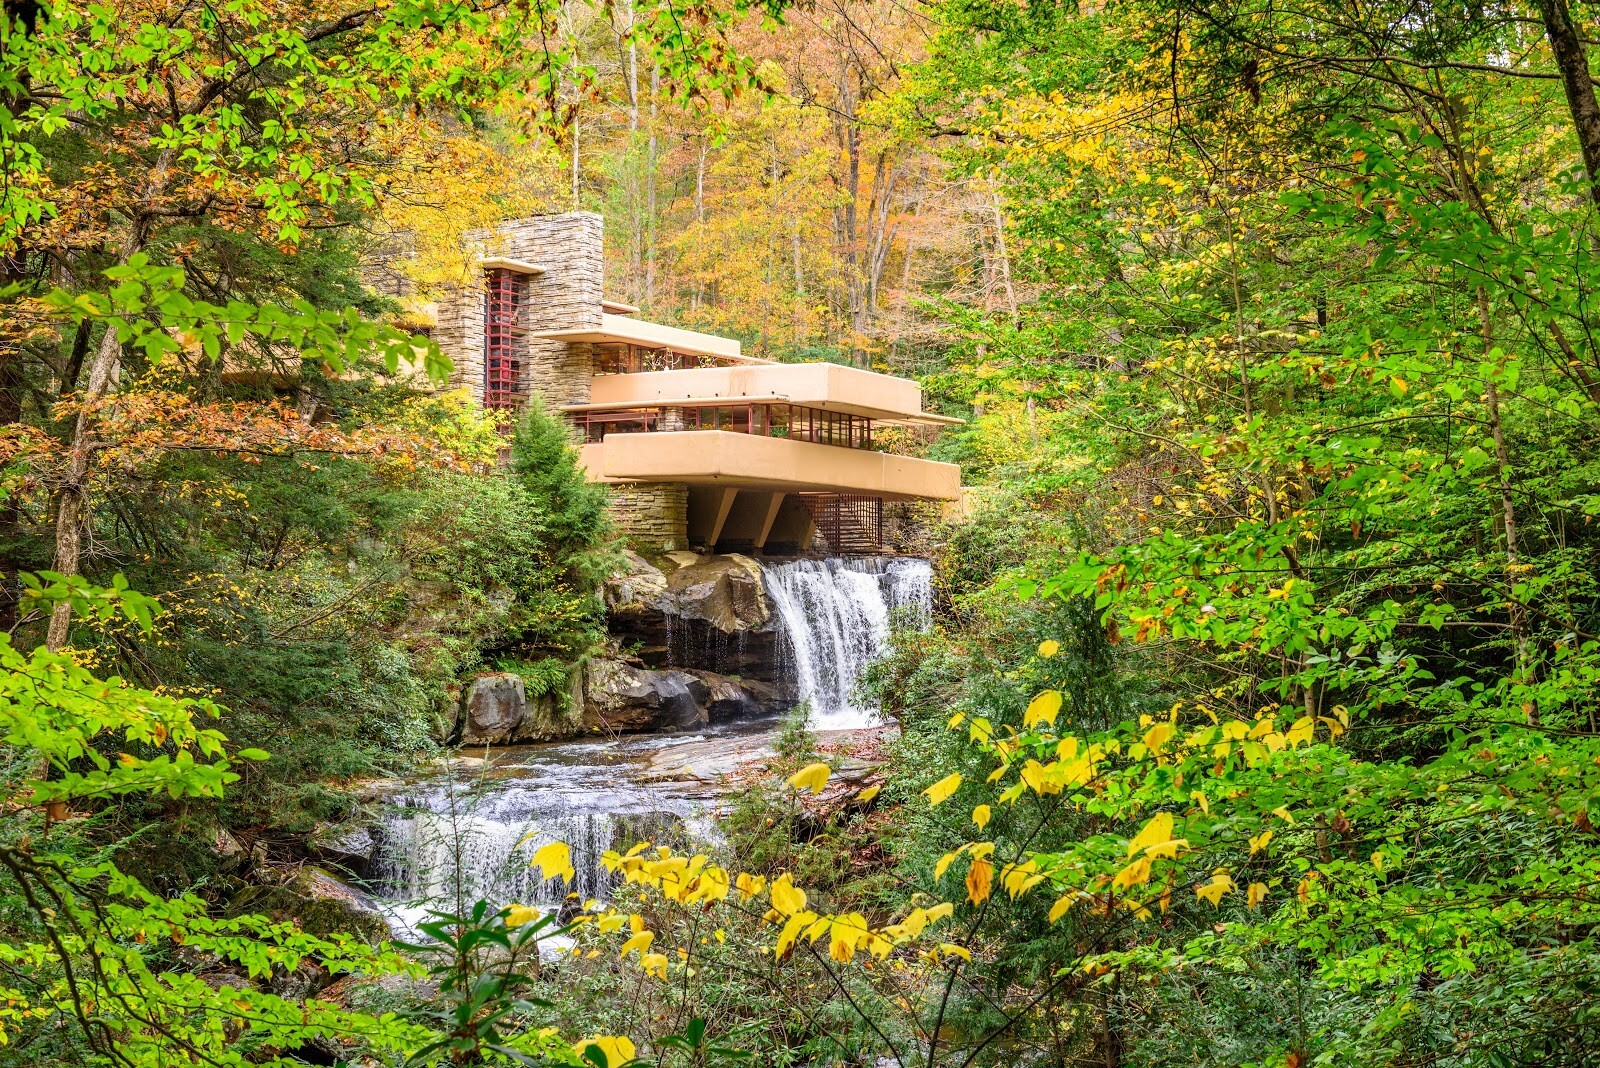 Fallingwater remains an icon in American Mid Century Modern architecture